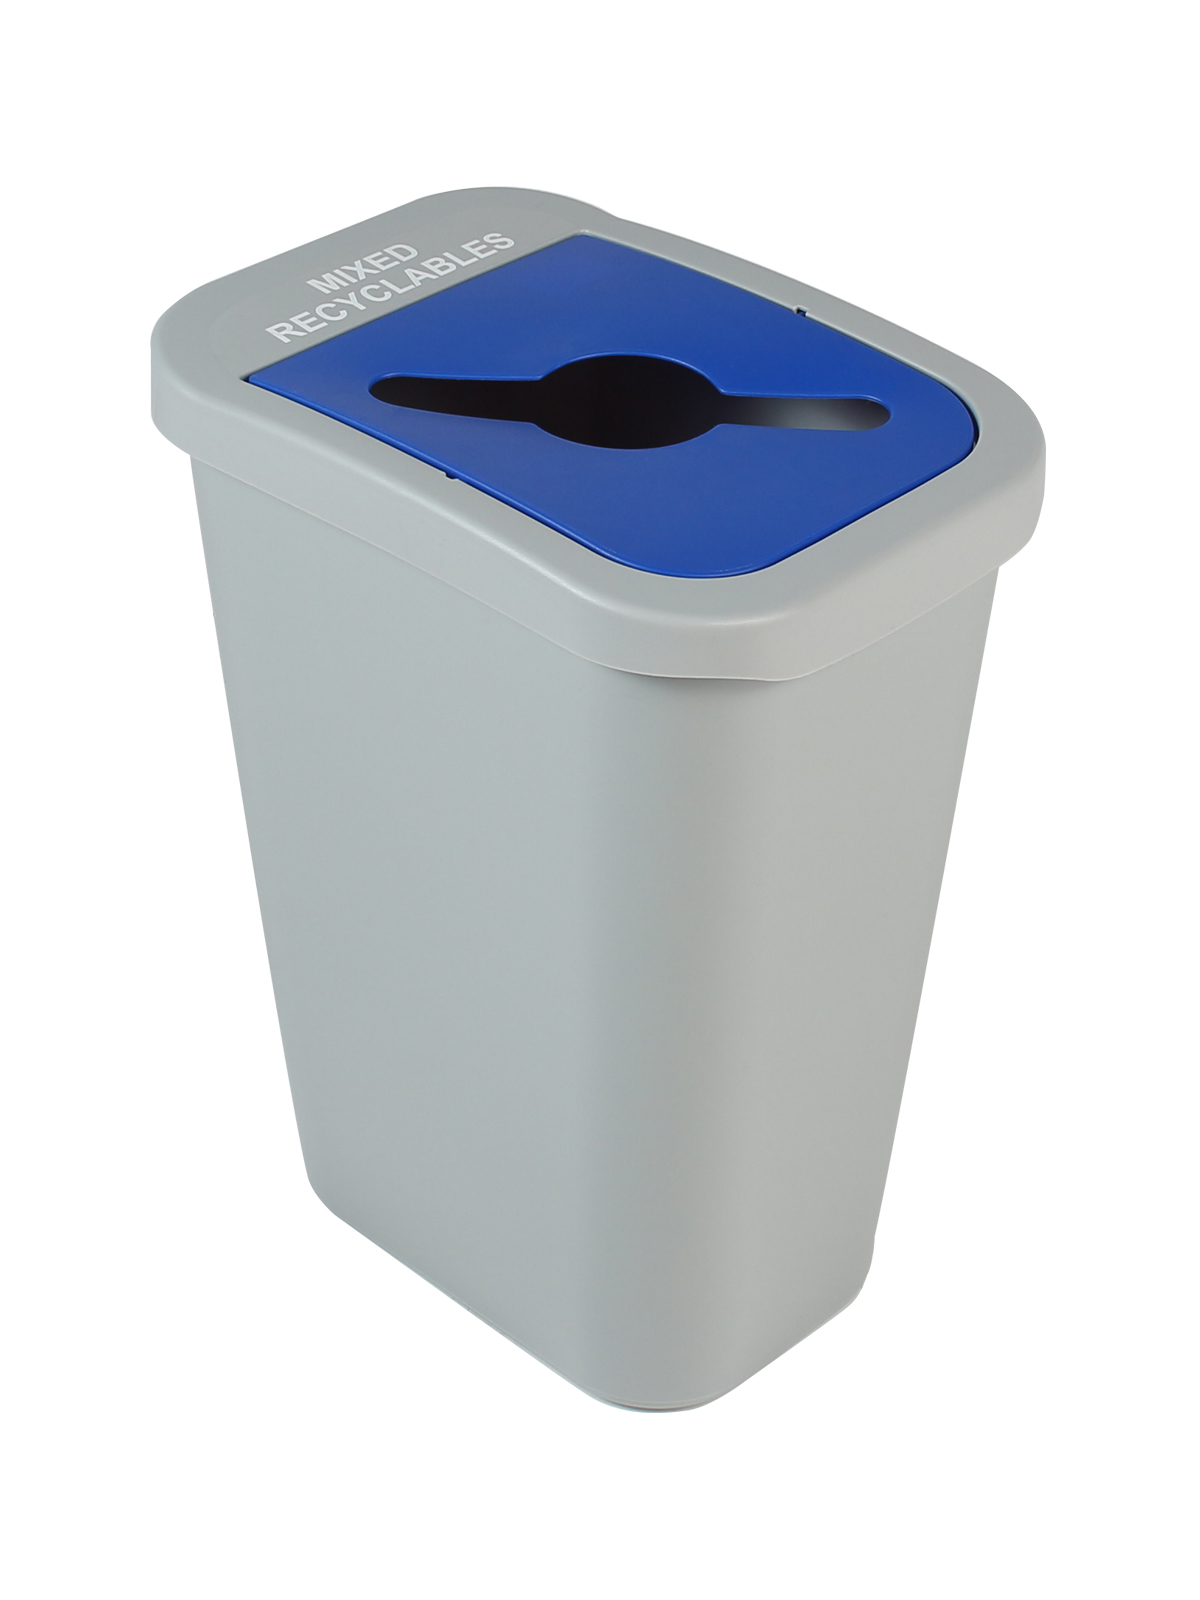 BILLI BOX - SINGLE 10 G - MIXED - GREY | BLUE - MIXED RECYCLABLES title=